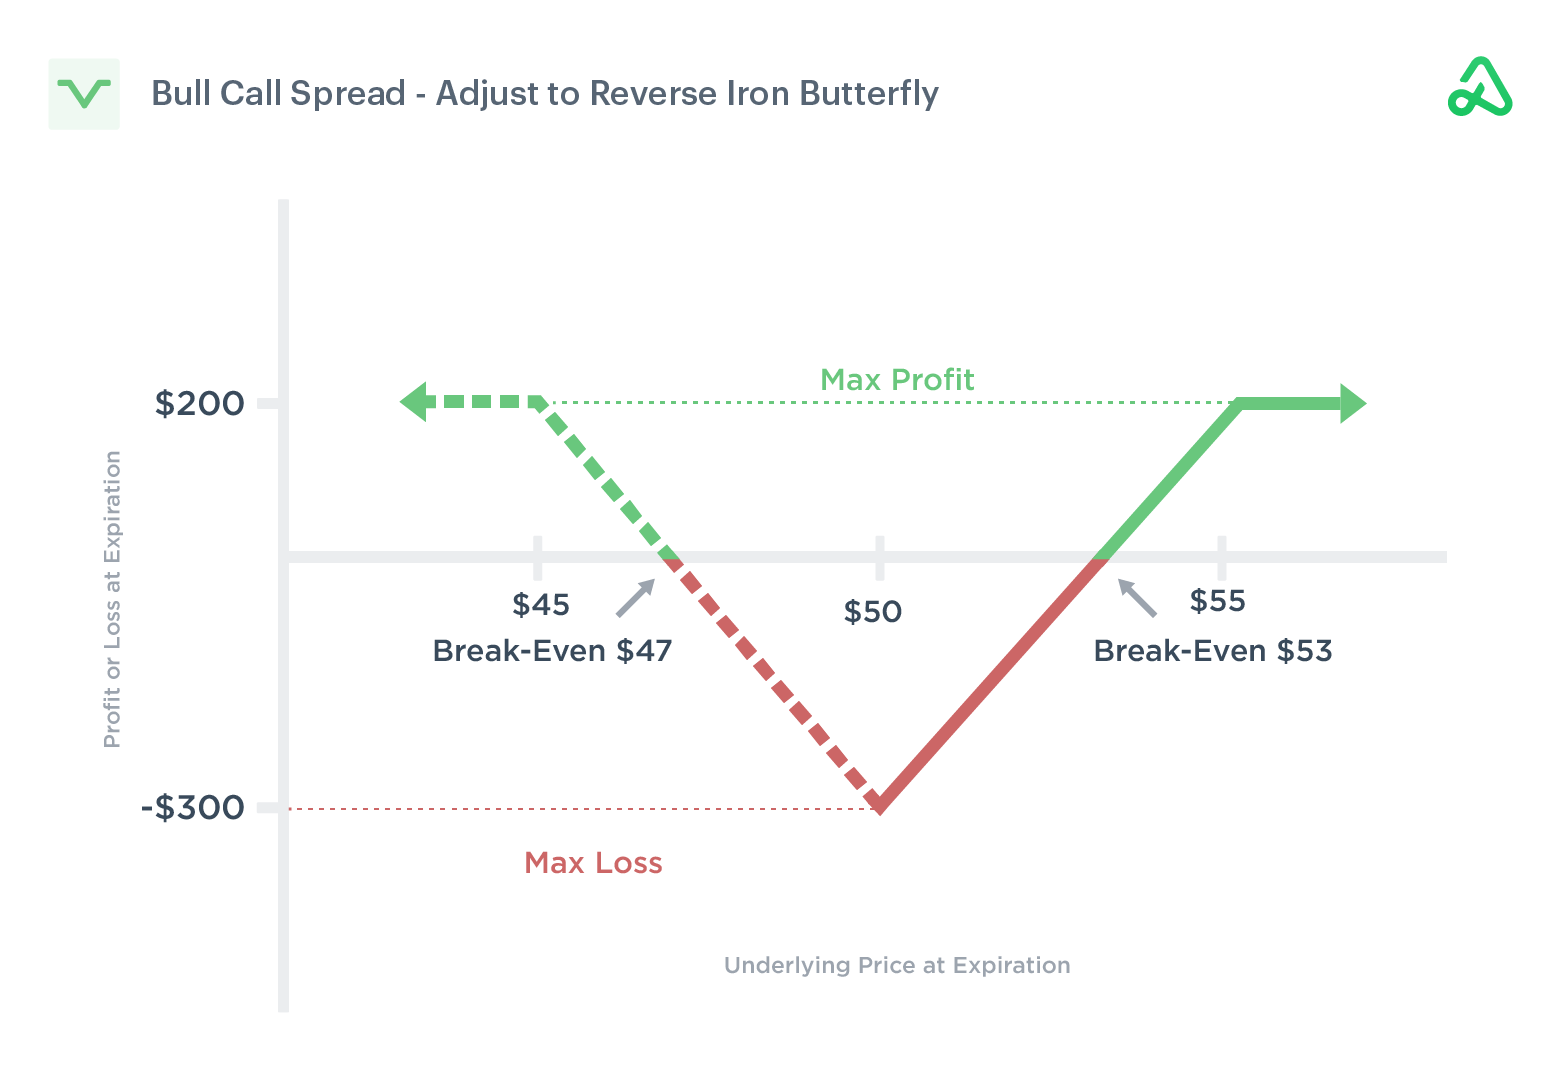 Image of a bull call spread adjusted into an reverse iron butterfly